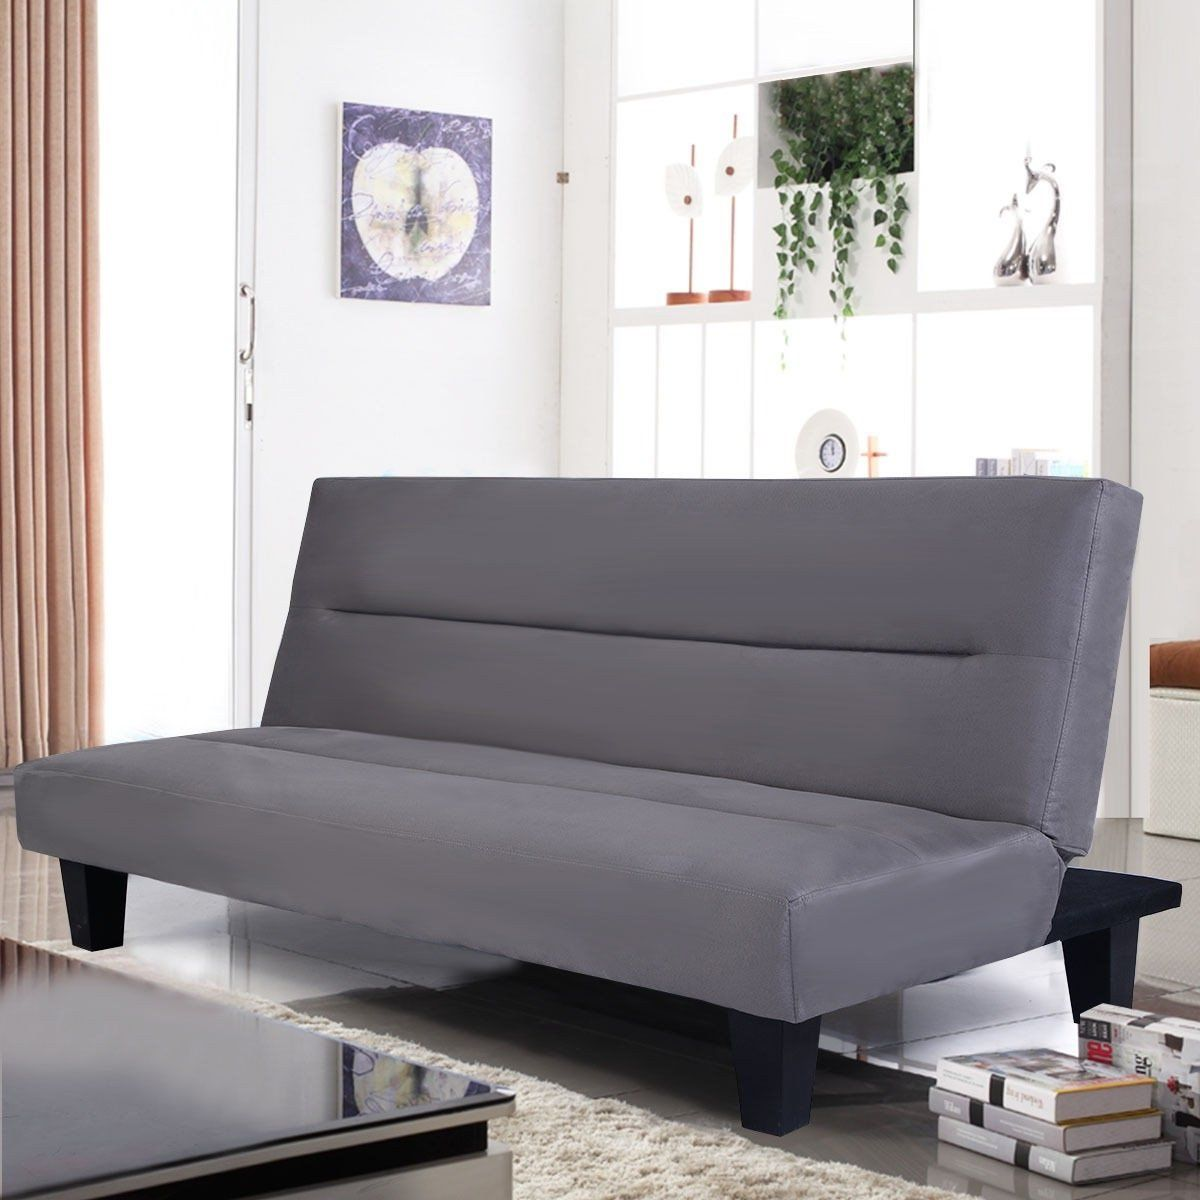 Premium Futon Sofa Convertable To Reclining Sleeper Bed For Modern Contemporary Living Room Apartment Modern Contemporary Living Room Contemporary Living Room